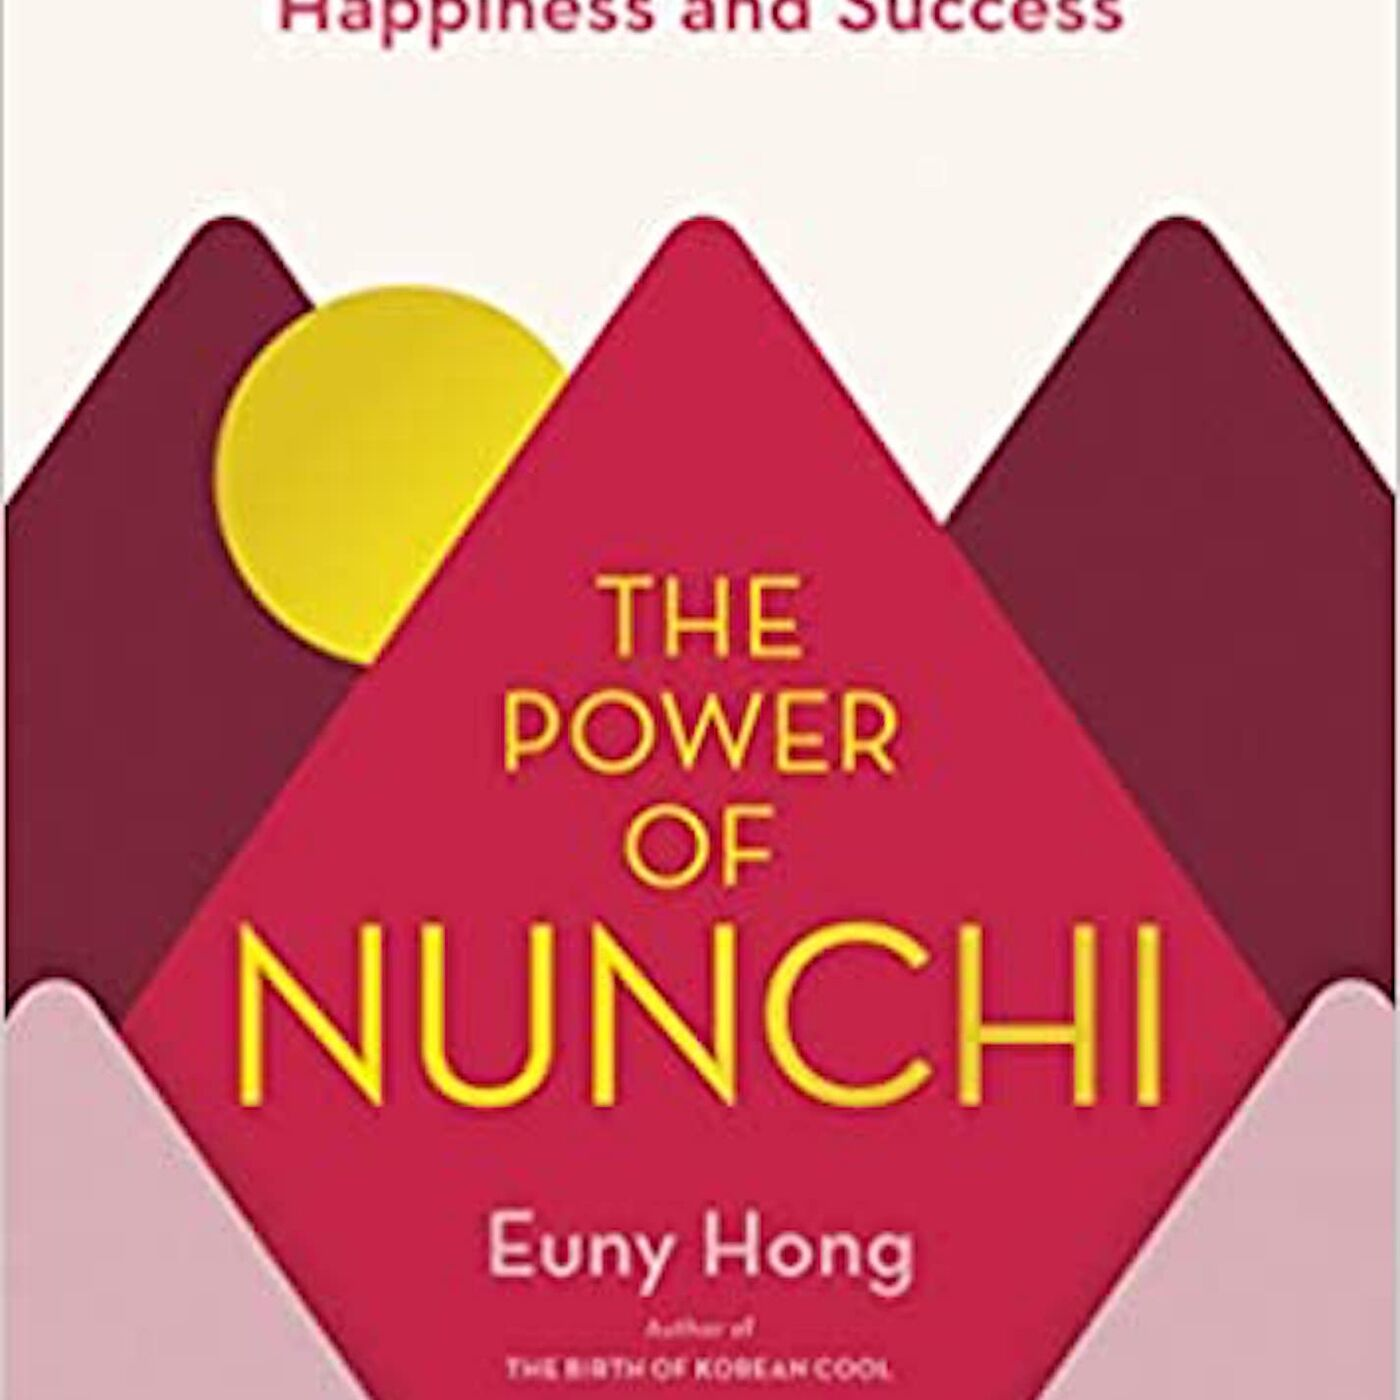 Talking The Power of Nunchi